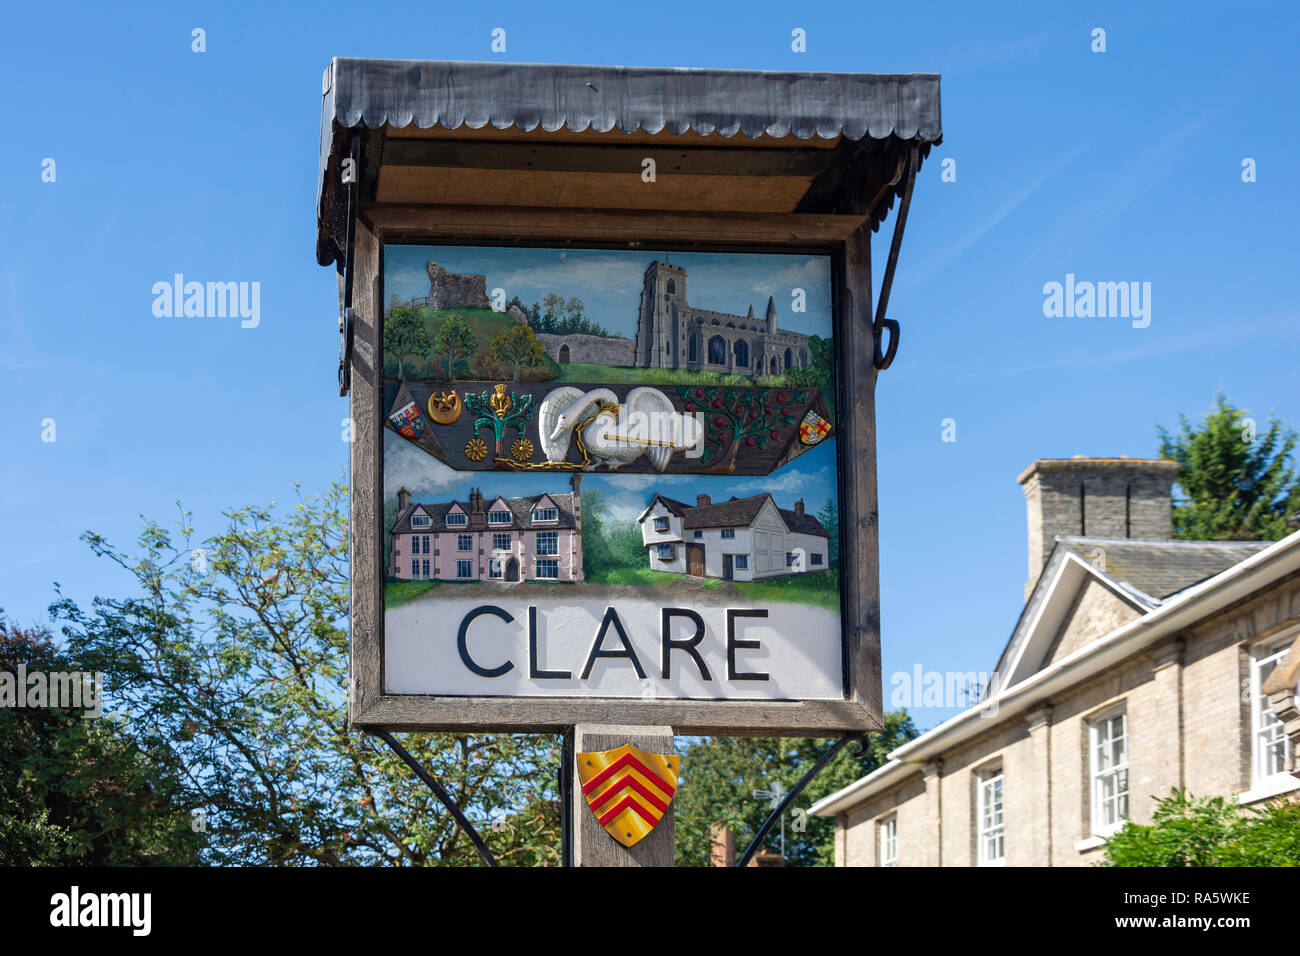 Village sign, Nethergate Street, Clare, Suffolk, England, United Kingdom - Stock Image